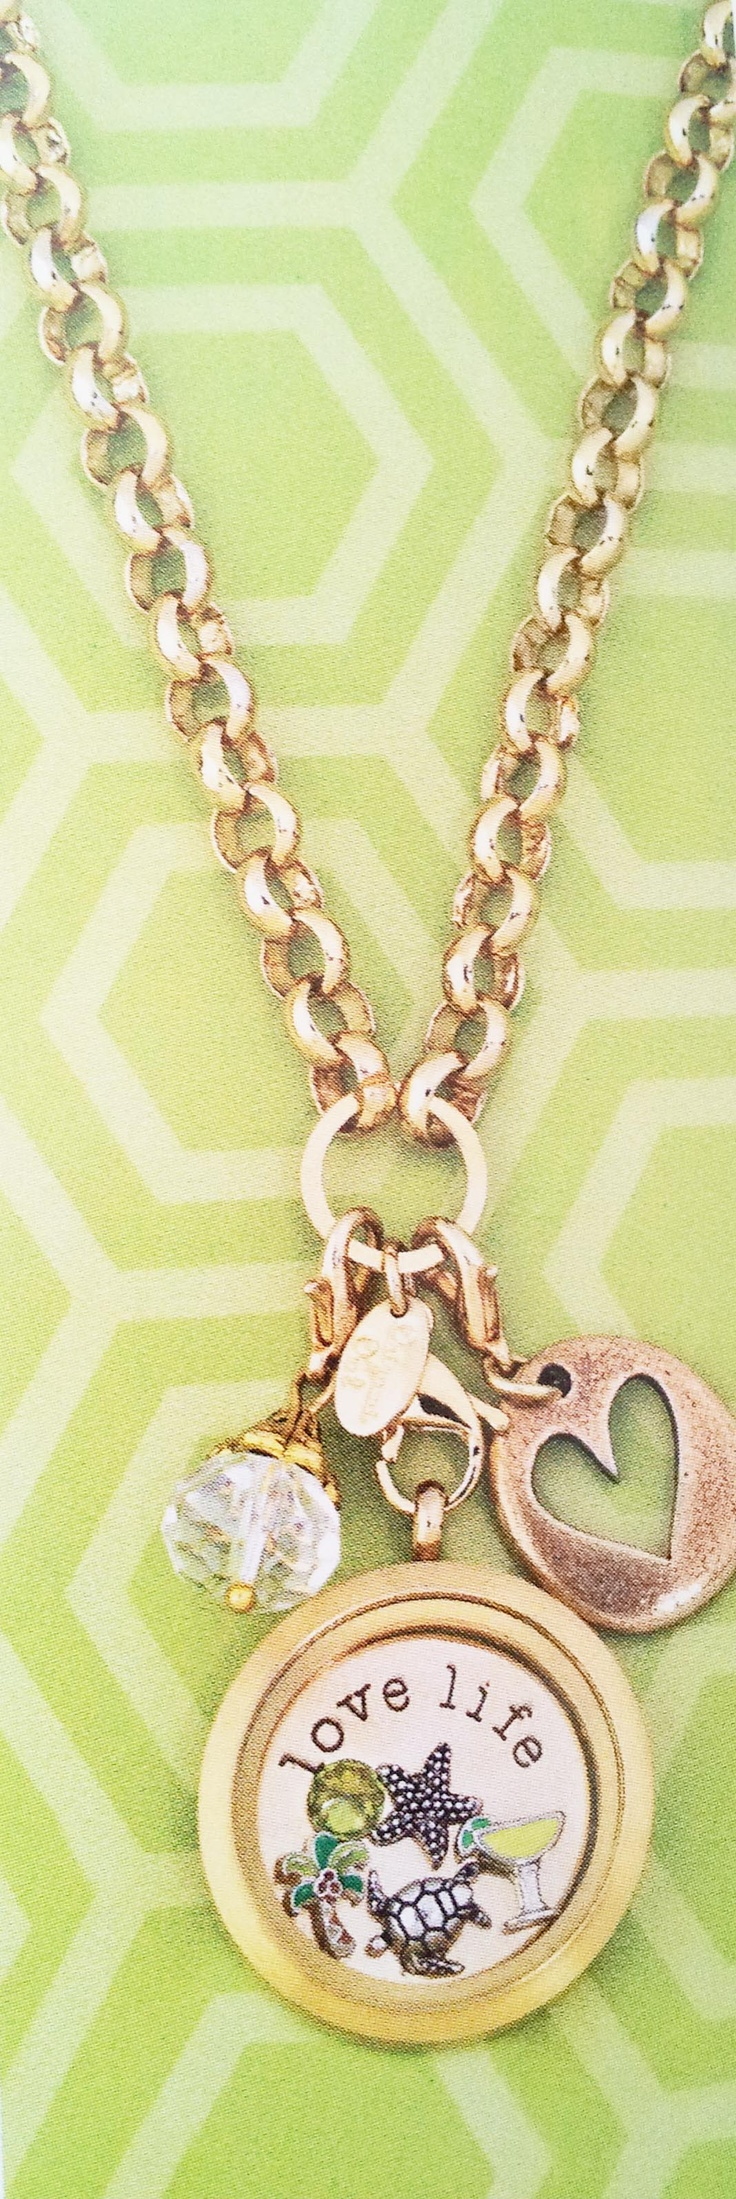 152 best origami owl living lockets images on pinterest origami owl gold jeuxipadfo Images